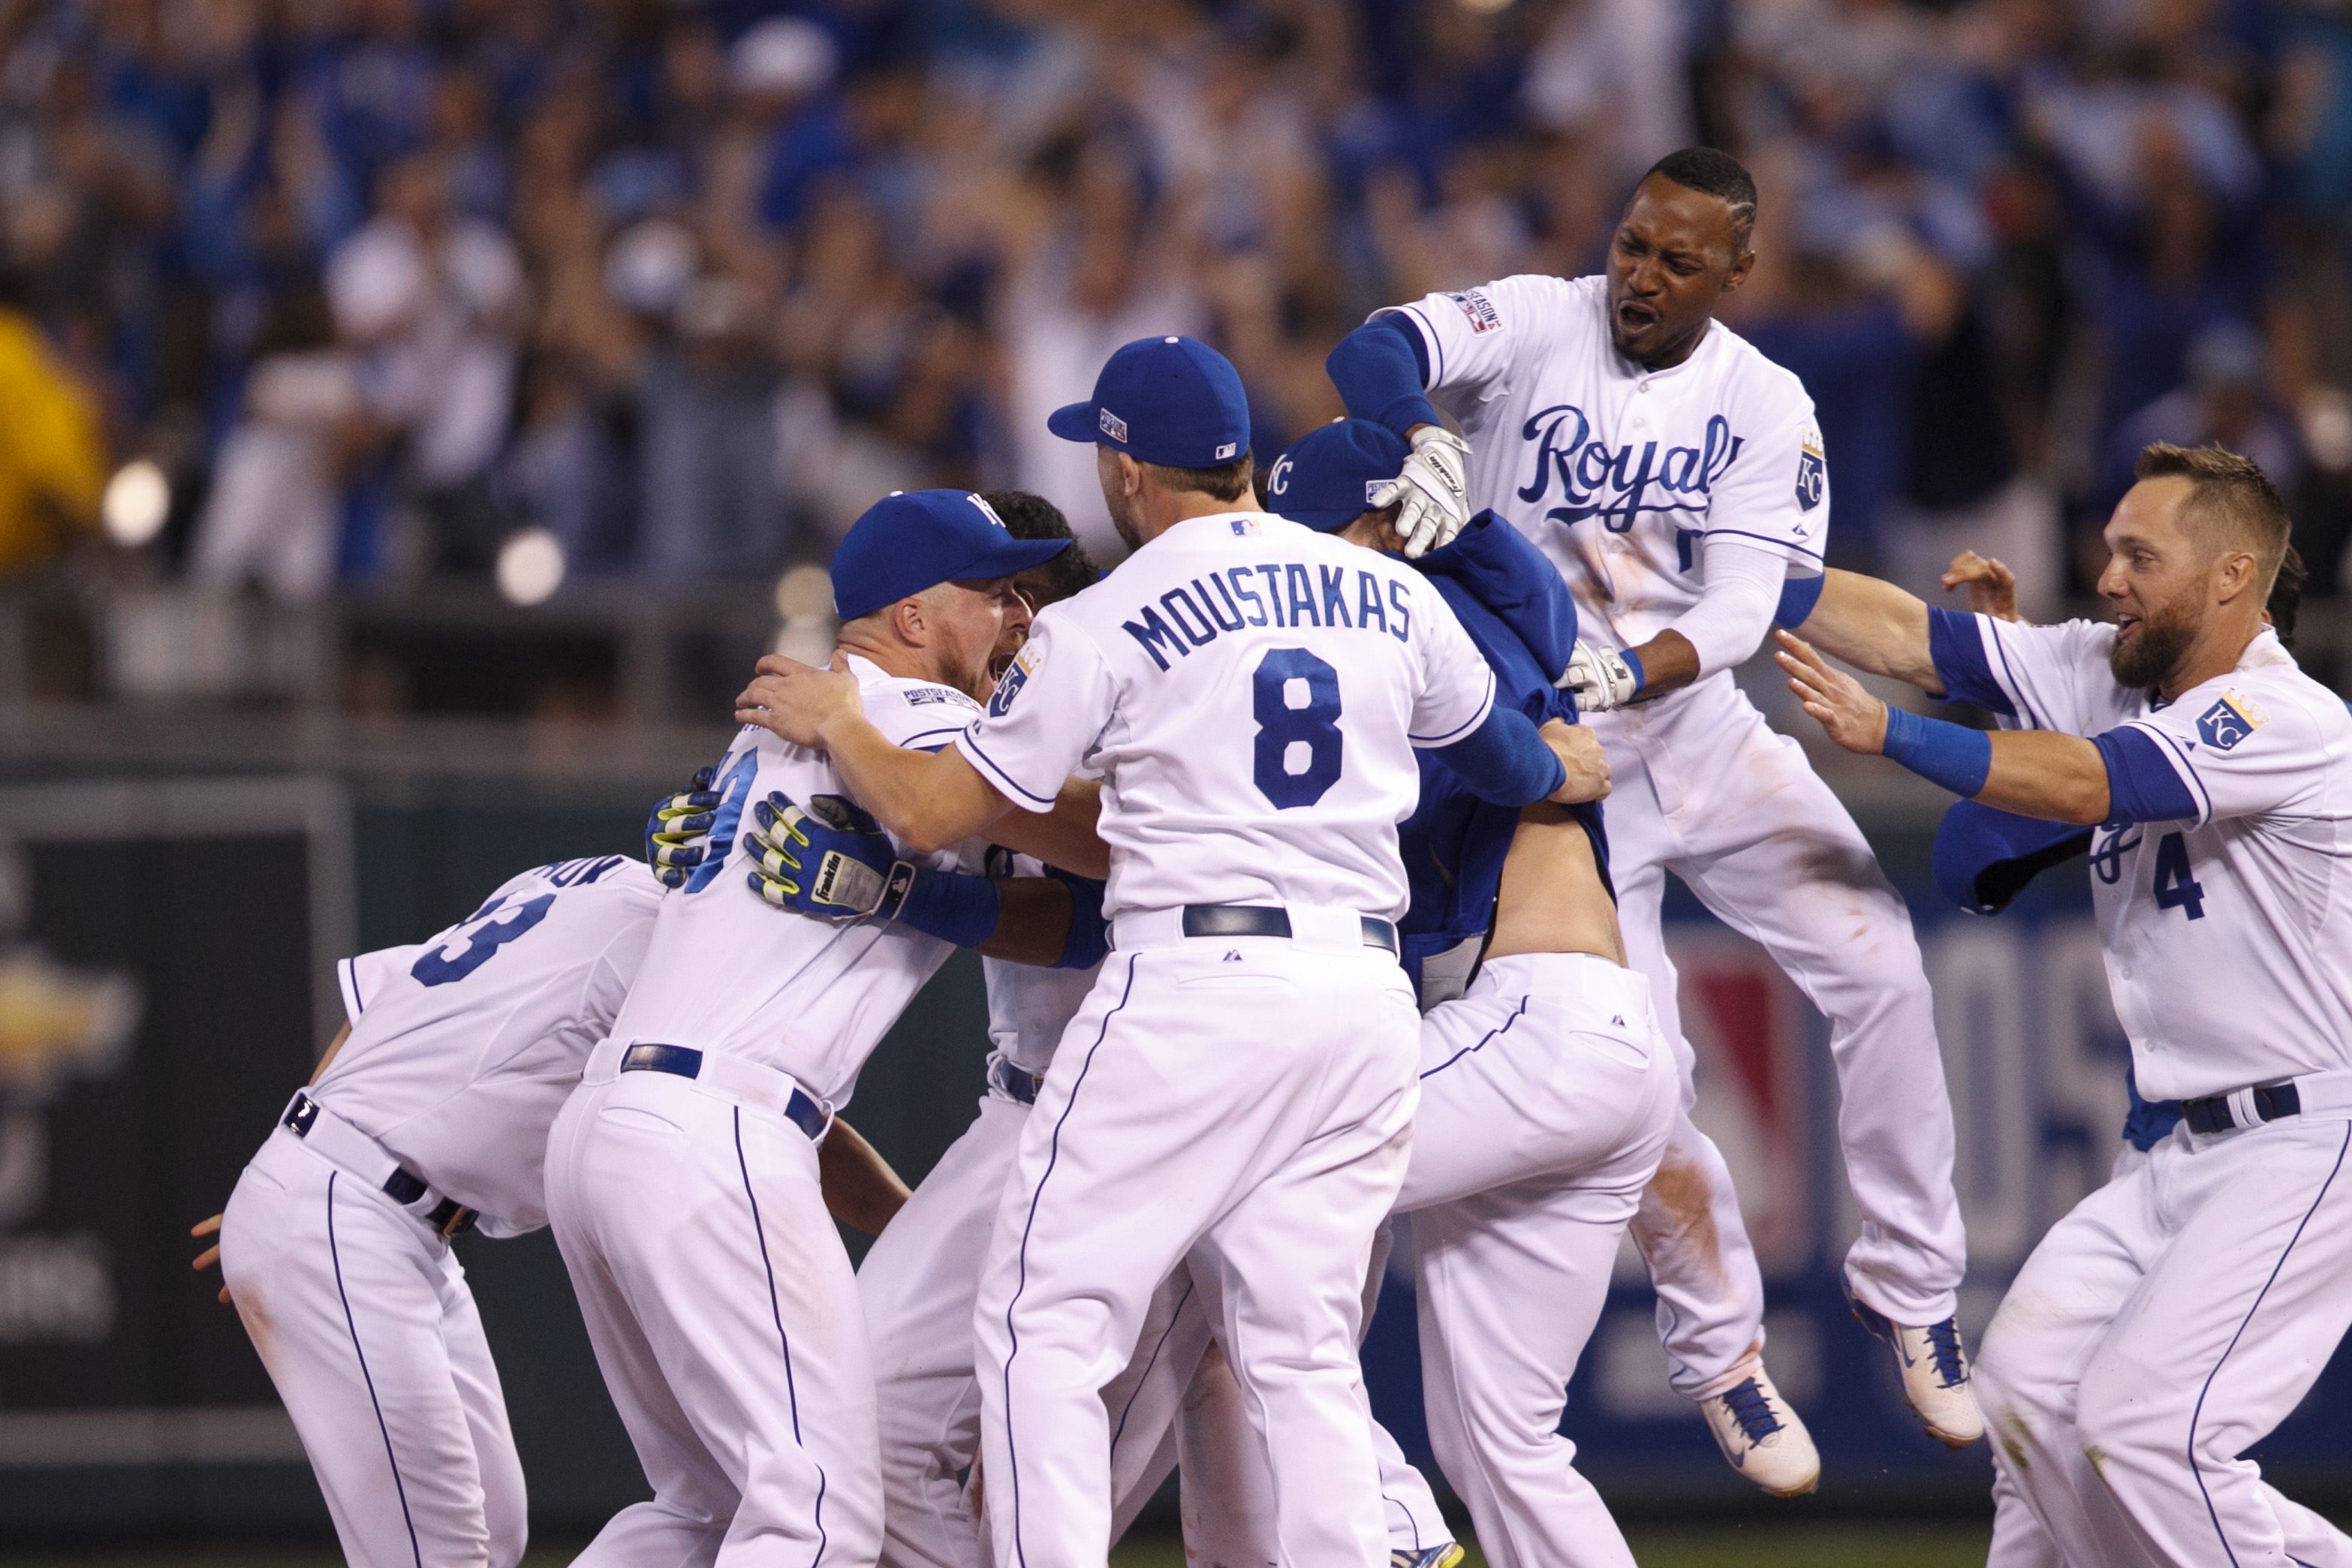 September 30, 2014: Kansas City Royals players celebrate after catcher Salvador Perez (13) hit a game winning single in the bottom of the 12th inning during the American League Wild Card game between the Oakland A's and the Kansas City Royals at Kauffman Stadium in Kansas City, Missouri. The Royals defeated the A's 9-8 in 12 innings. (Icon Sportswire via AP Images)